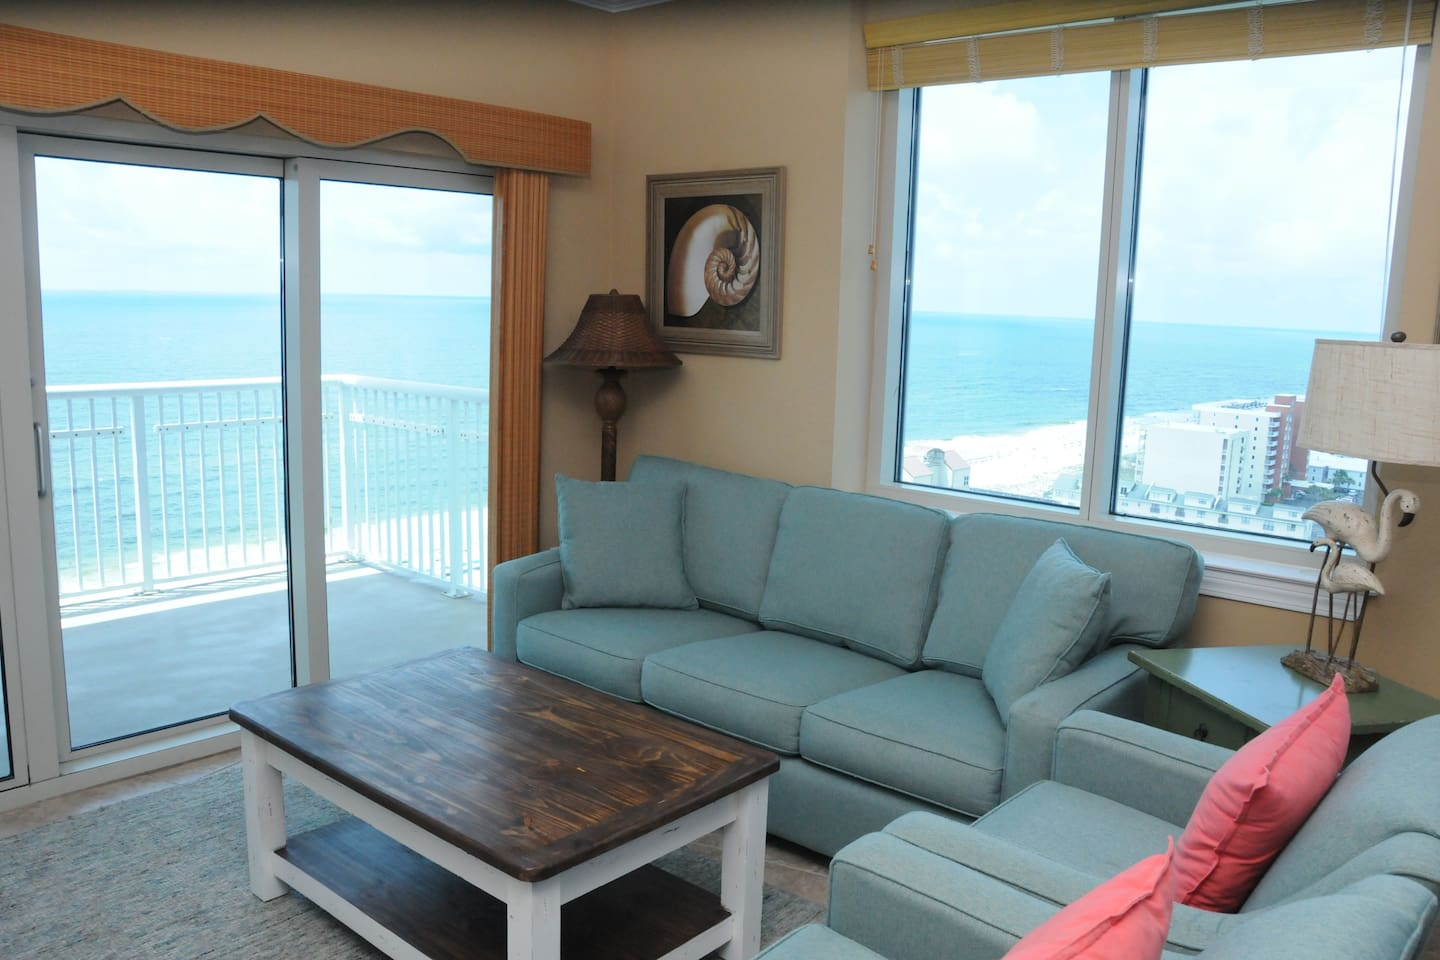 Relax in this updated Living Room while taking in Breathtaking Views of the Gulf